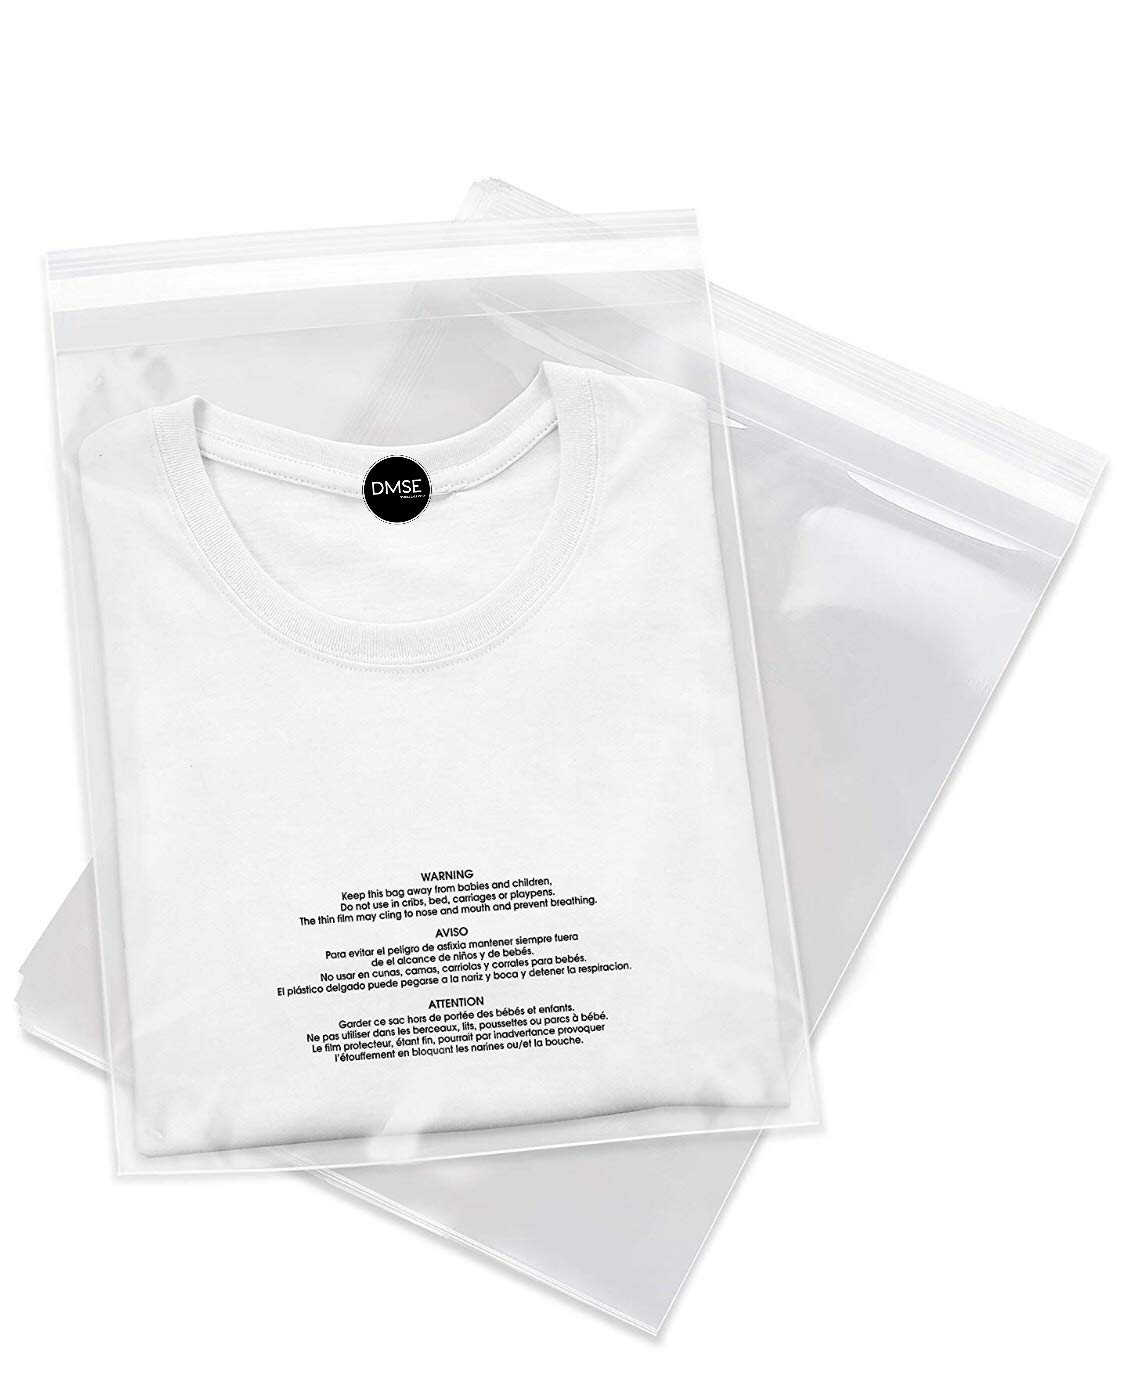 DMSE T Shirt Self Seal Poly Clear Plastic 1.5mil Clothing Merchandise Bags Pants 9 x 12